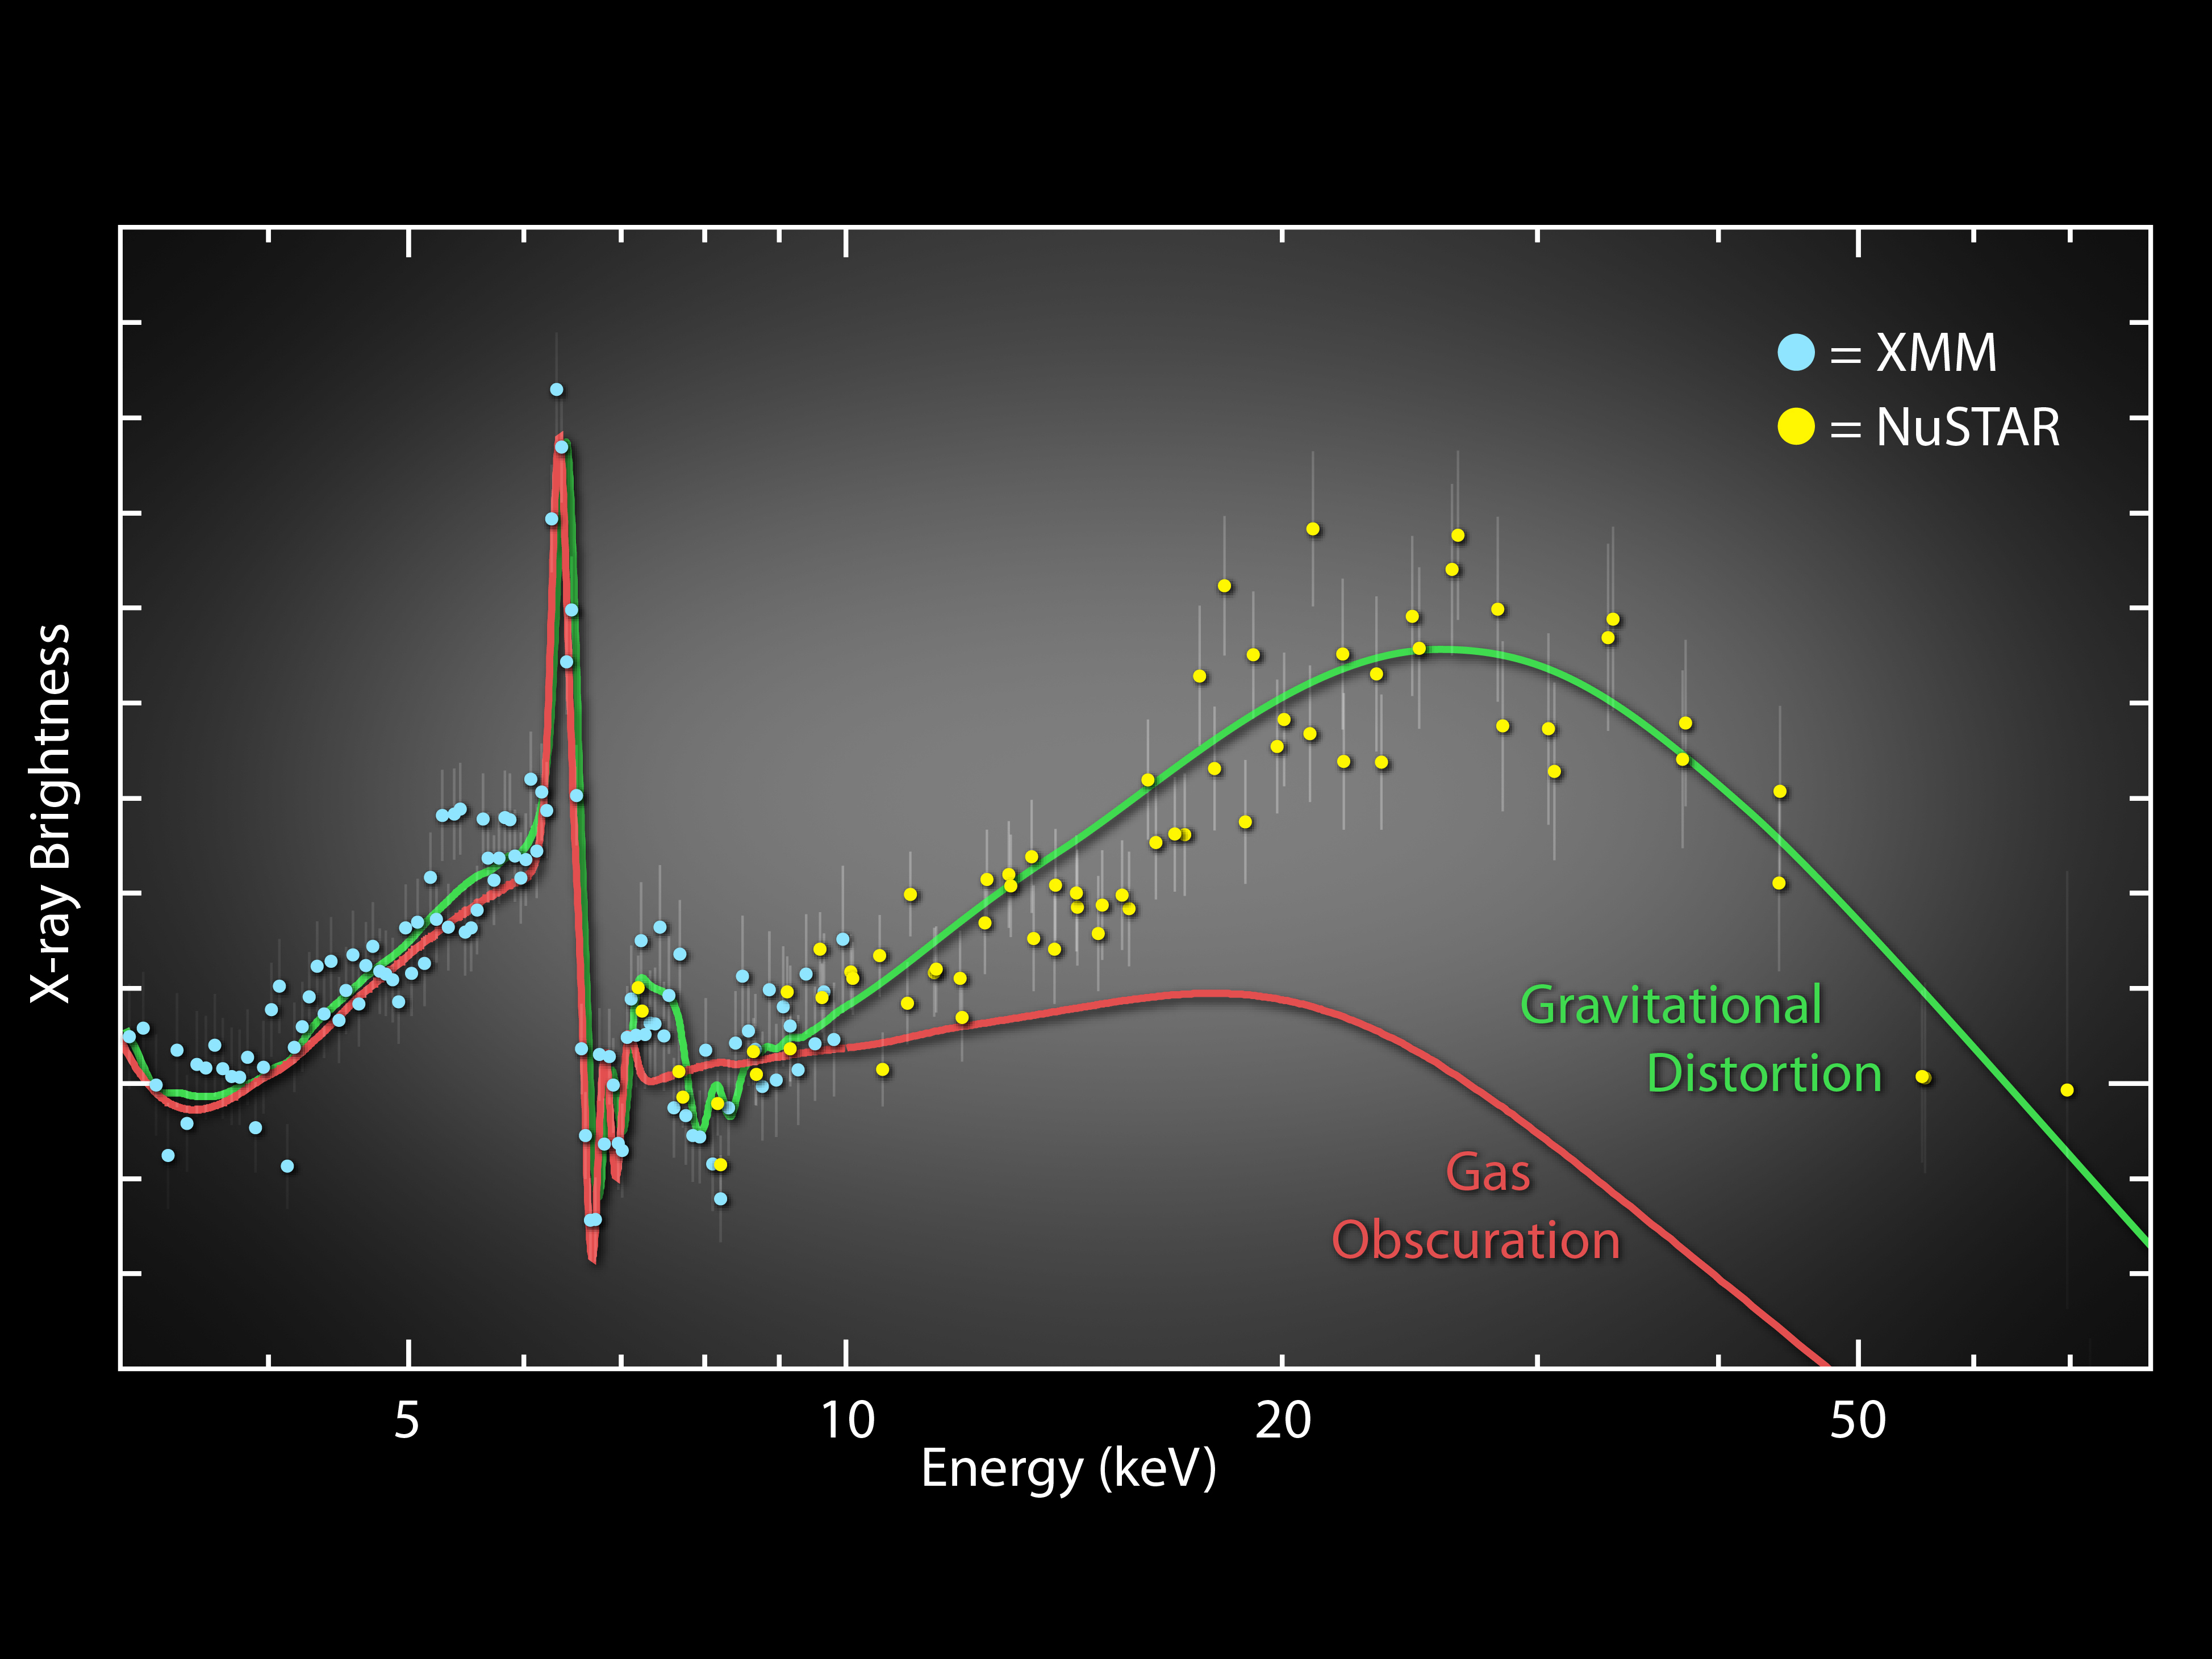 Two theoretical models of X-ray emissions